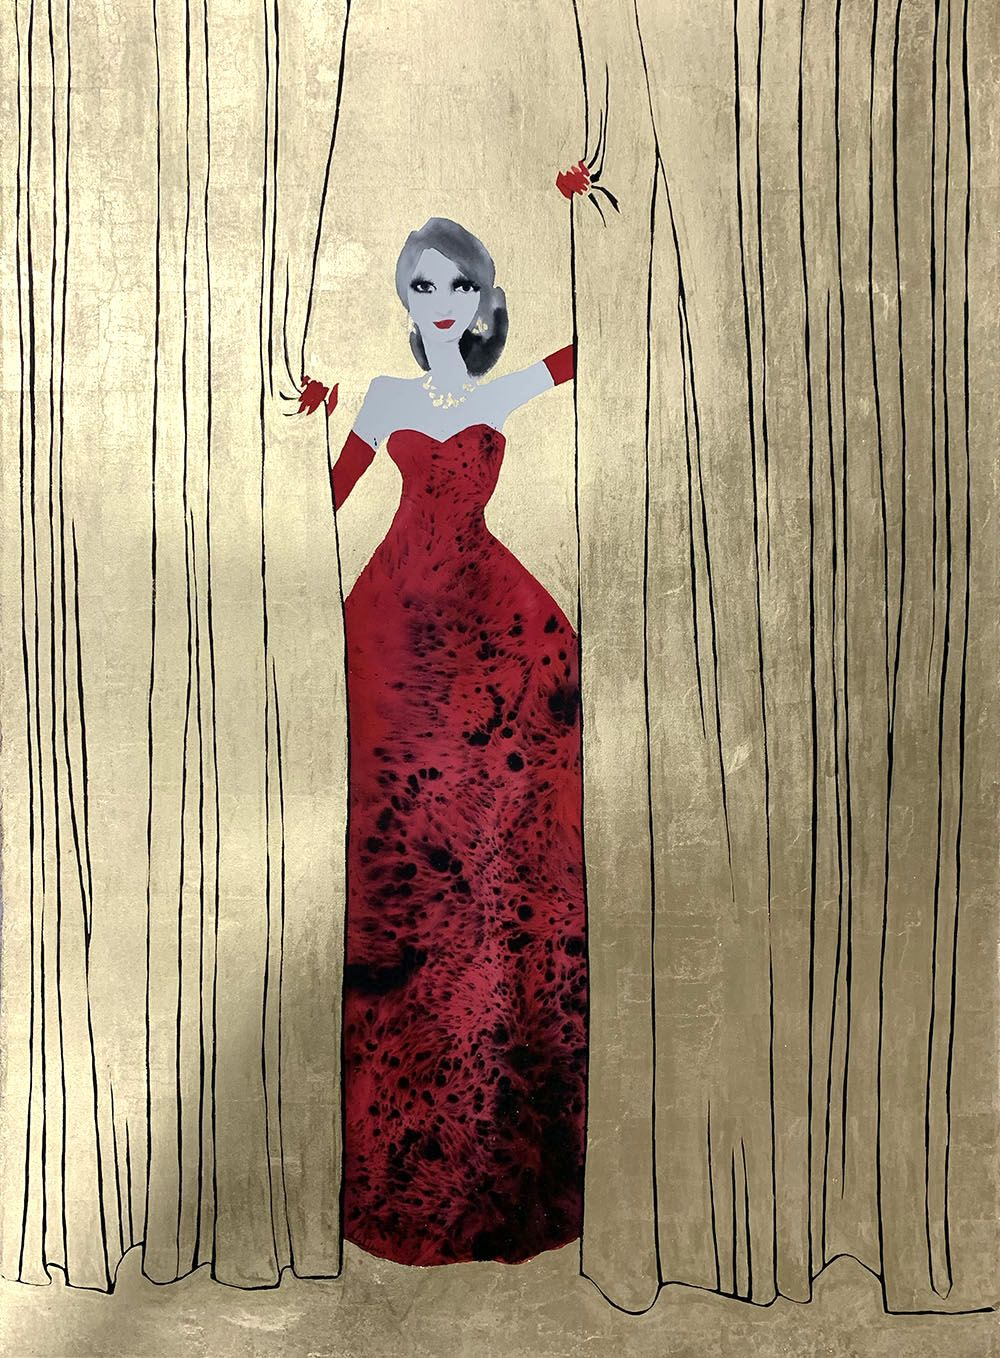 Red Dress, The Entrance by Bridget Davies